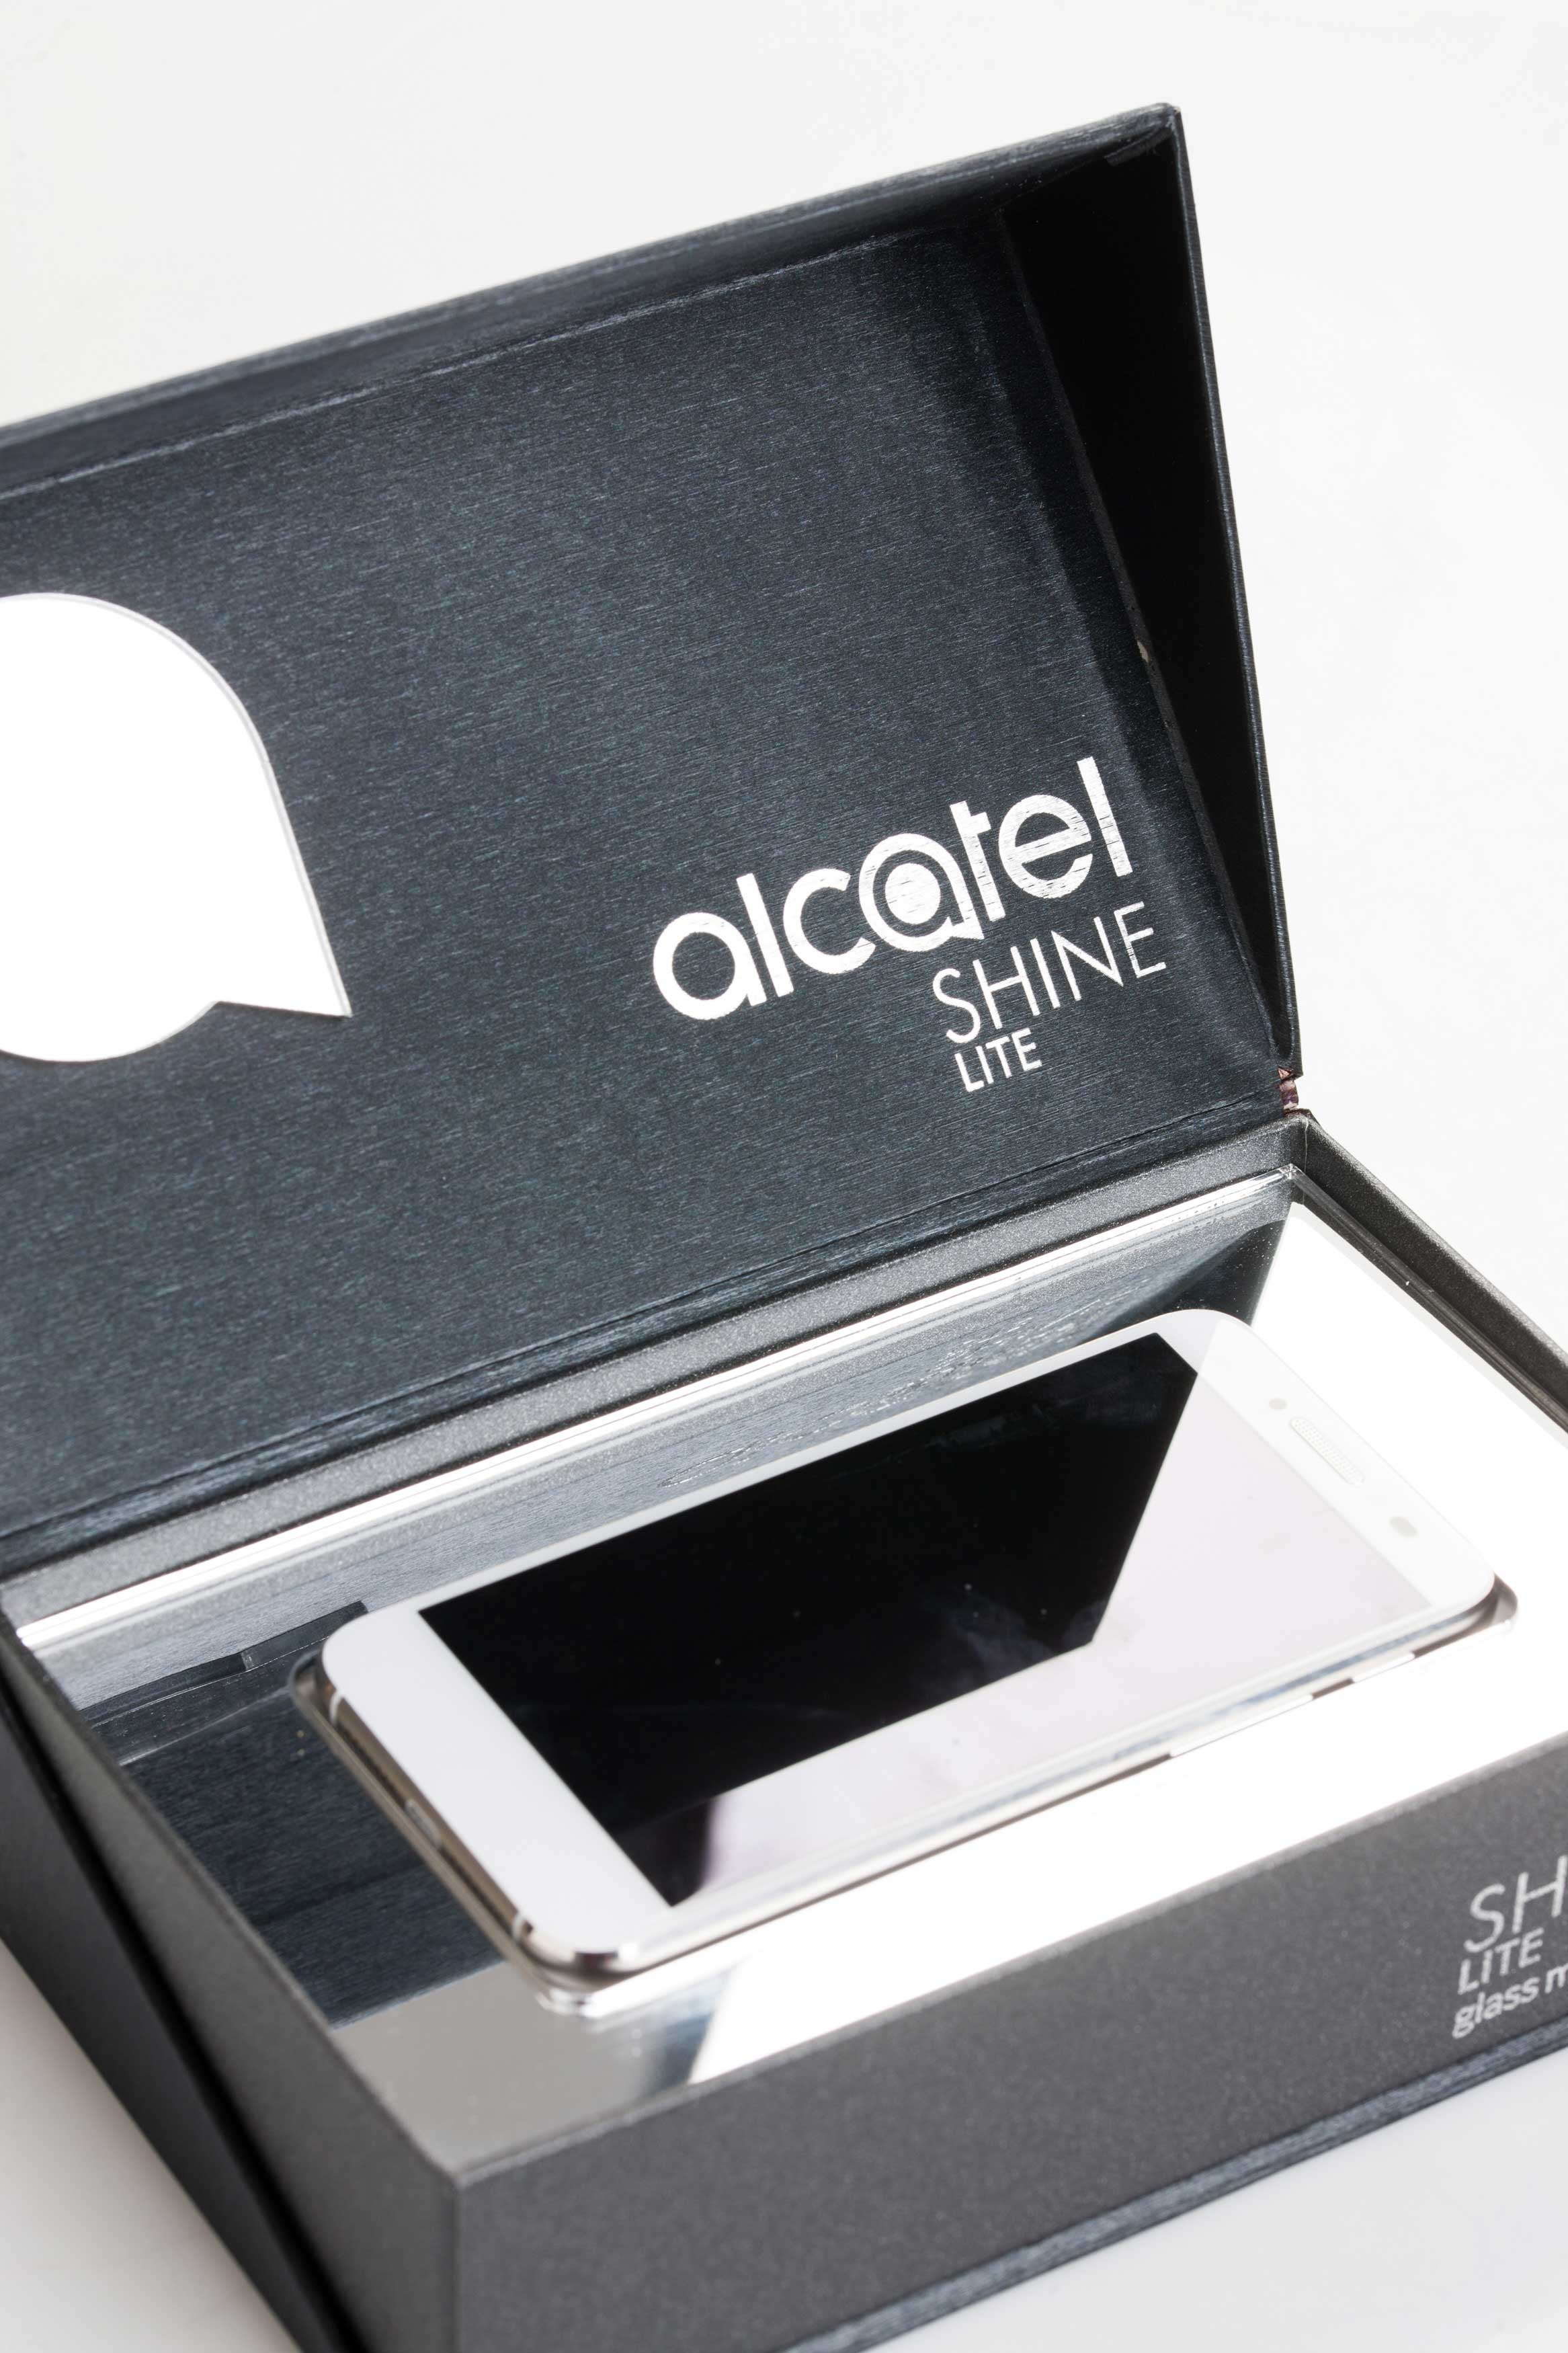 Alcatel Shine lite_5